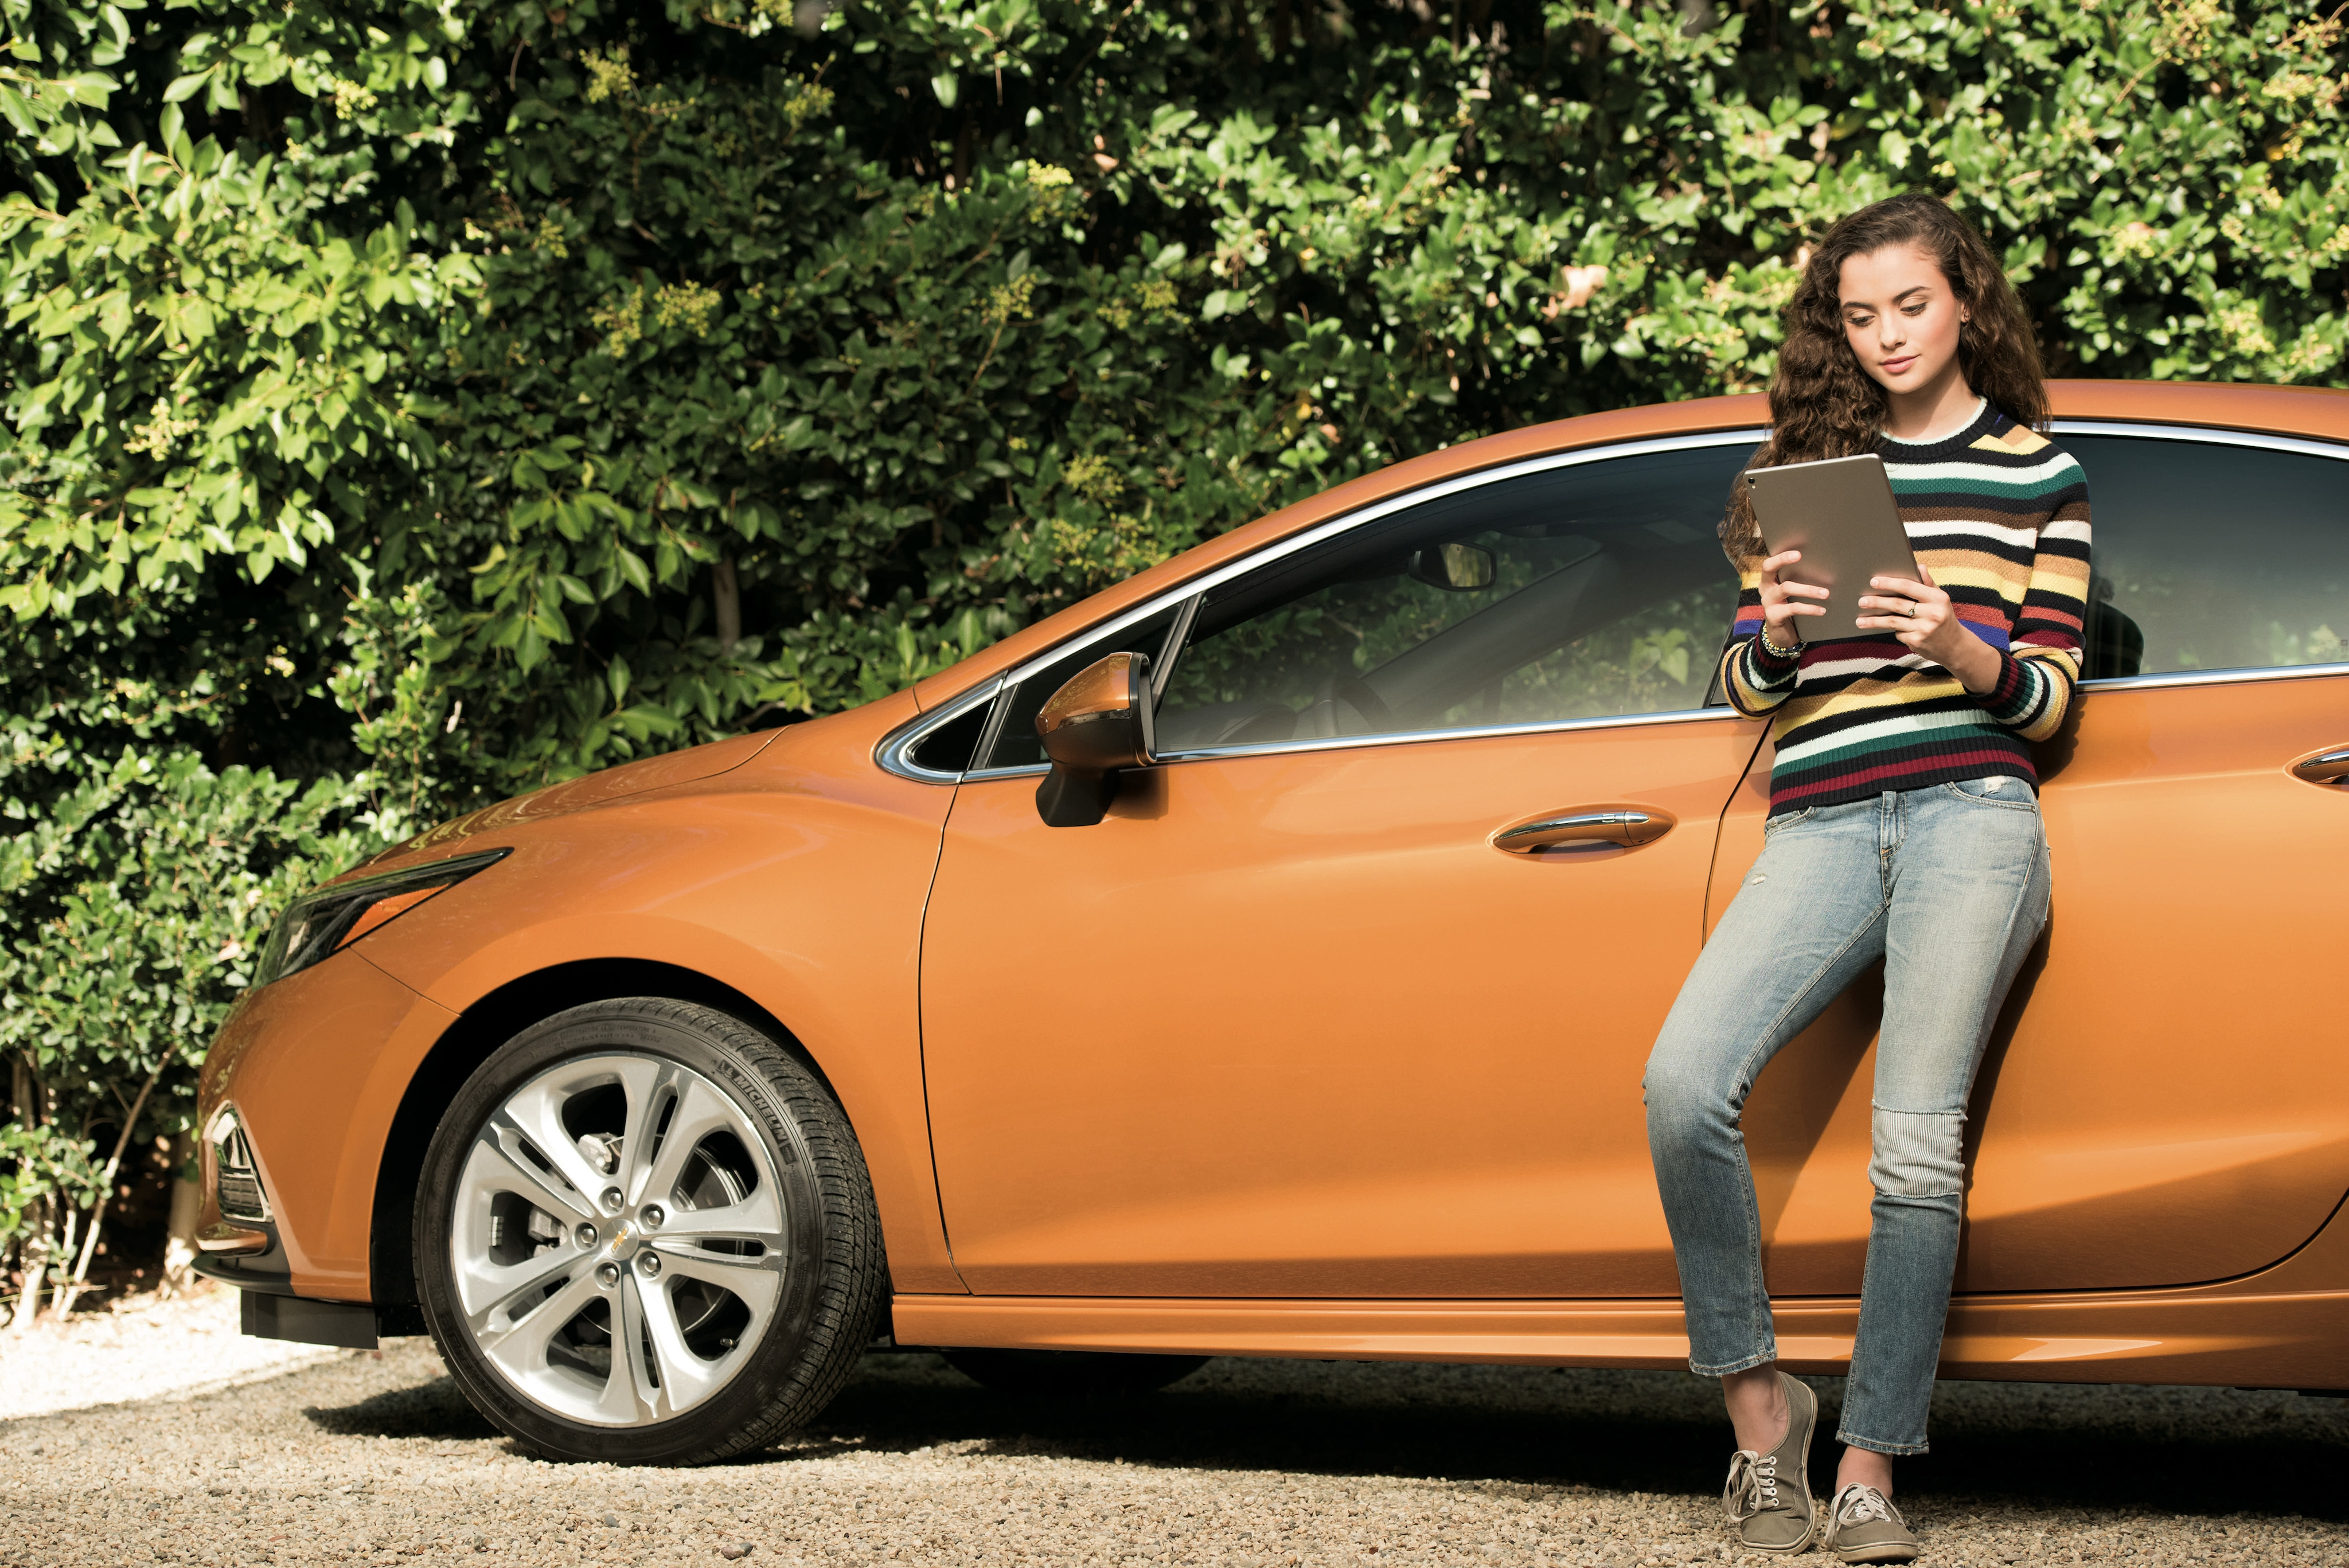 Chevy unlimited prepaid data plan